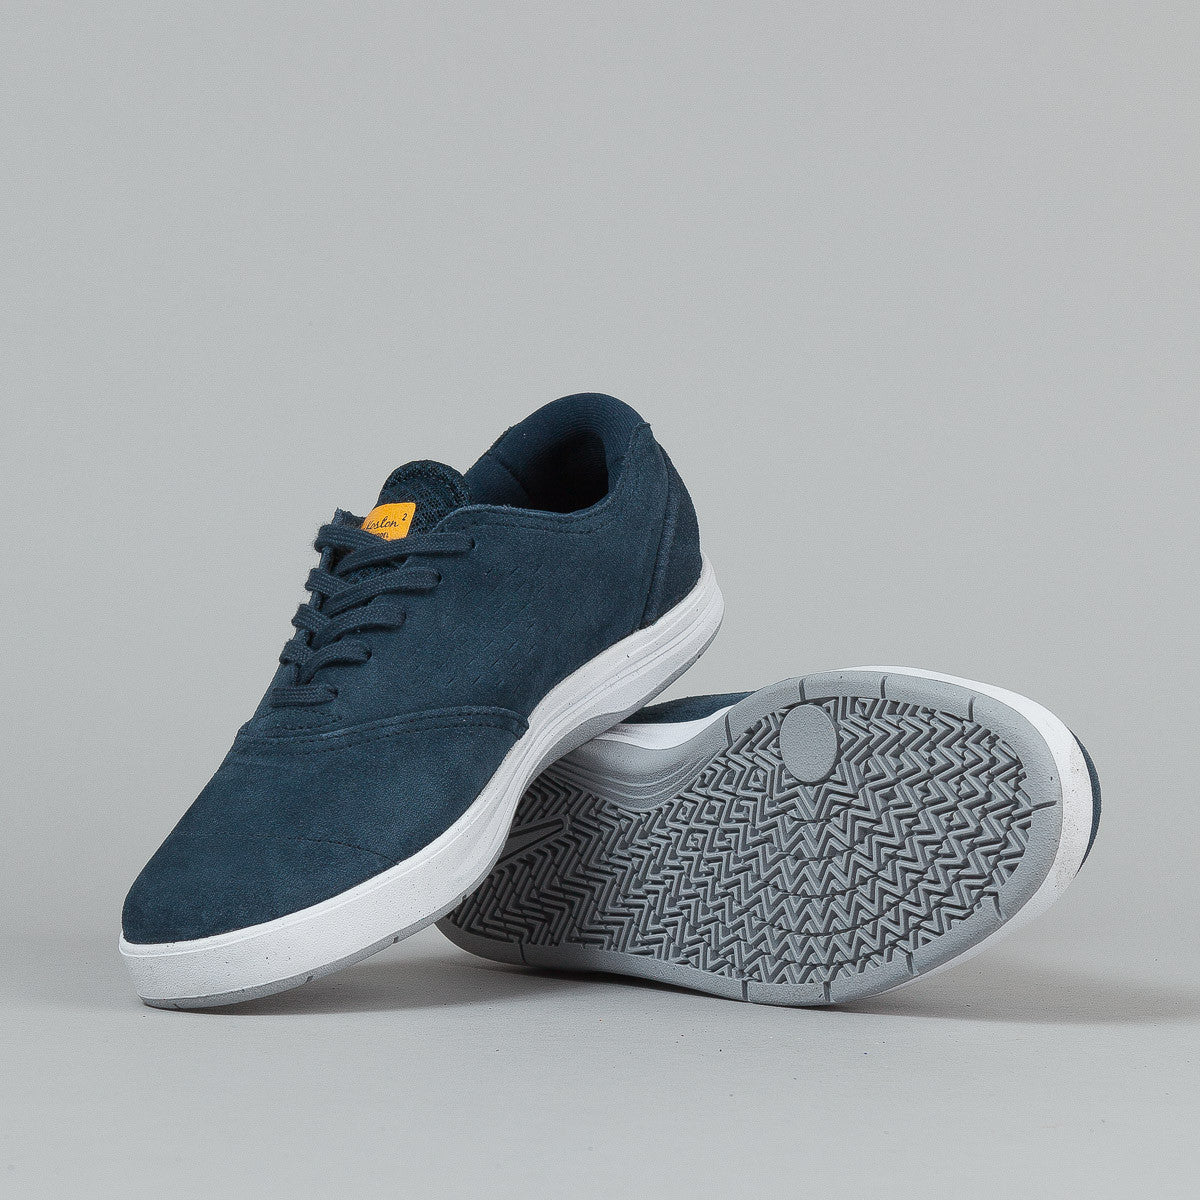 Nike SB Eric Koston 2 Armory Navy / Laser Orange - White